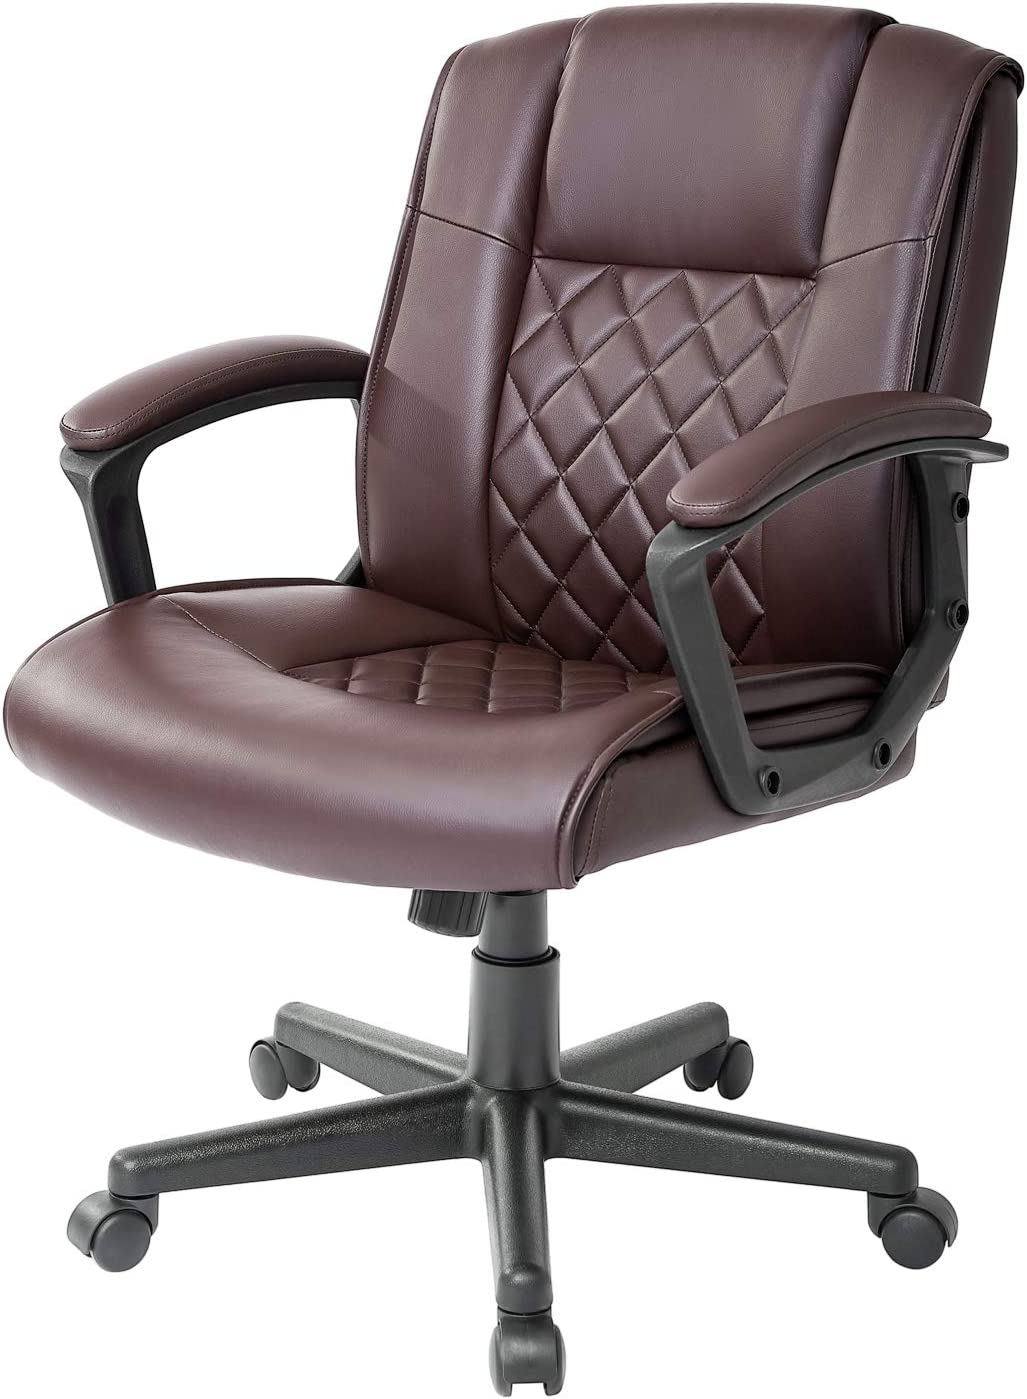 Qulomvs Ergonomic Office Desk Chair with Wheels Back Support Computer Executive Task Chair with Arms 360 Swivel (Brown)